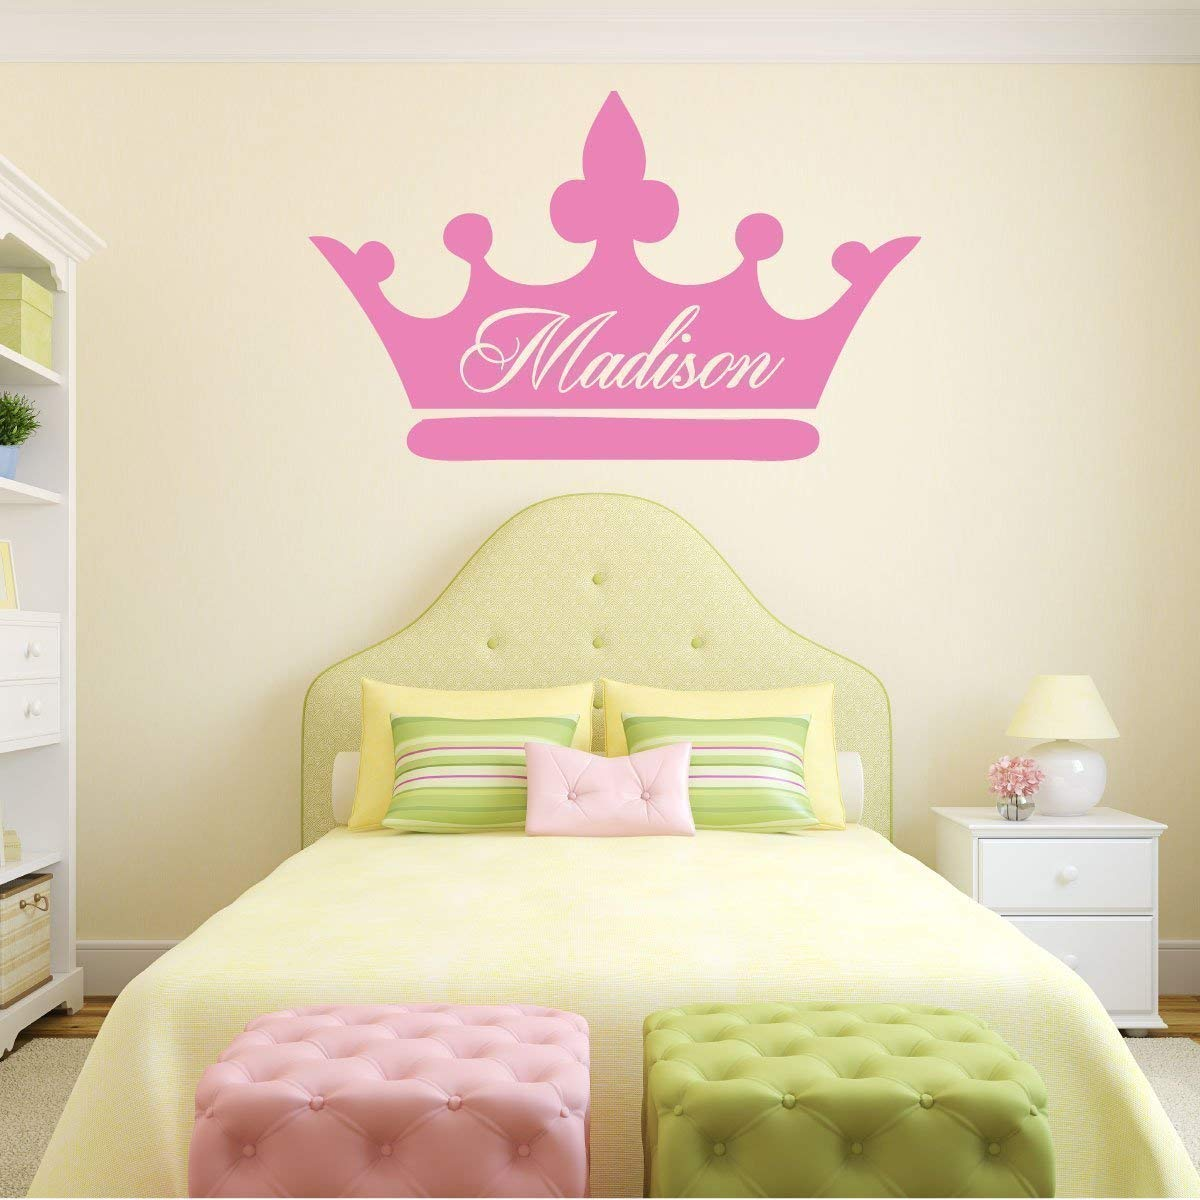 Amazon.com: Personalized Princess Wall Art Decals Crown - Custom ...